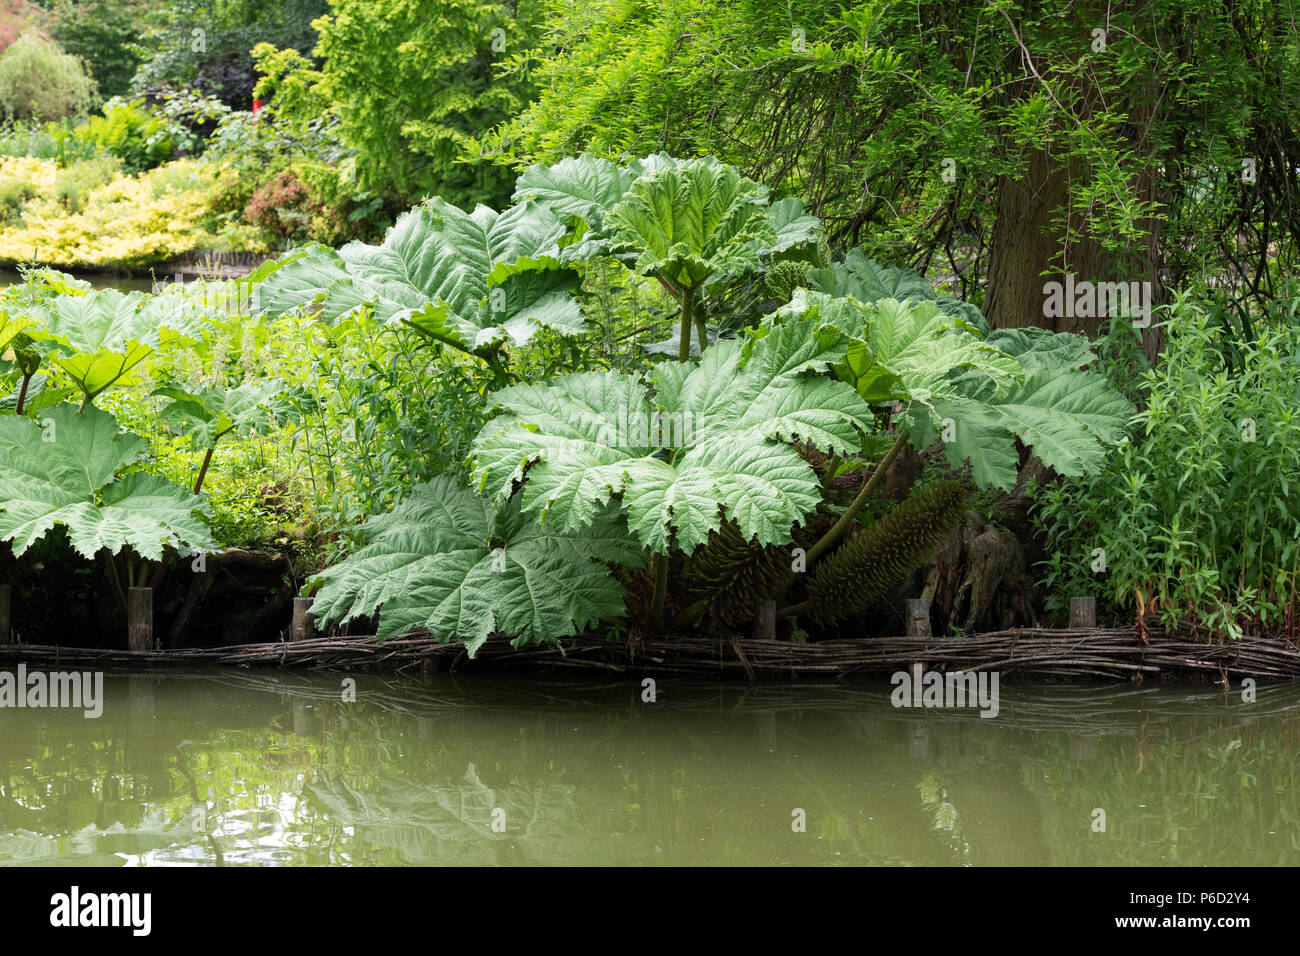 Gunnera Tinctoria, Giant rhubarb leaves in june reflecting in a pond at RHS Wisley Gardens, Surrey, England Stock Photo